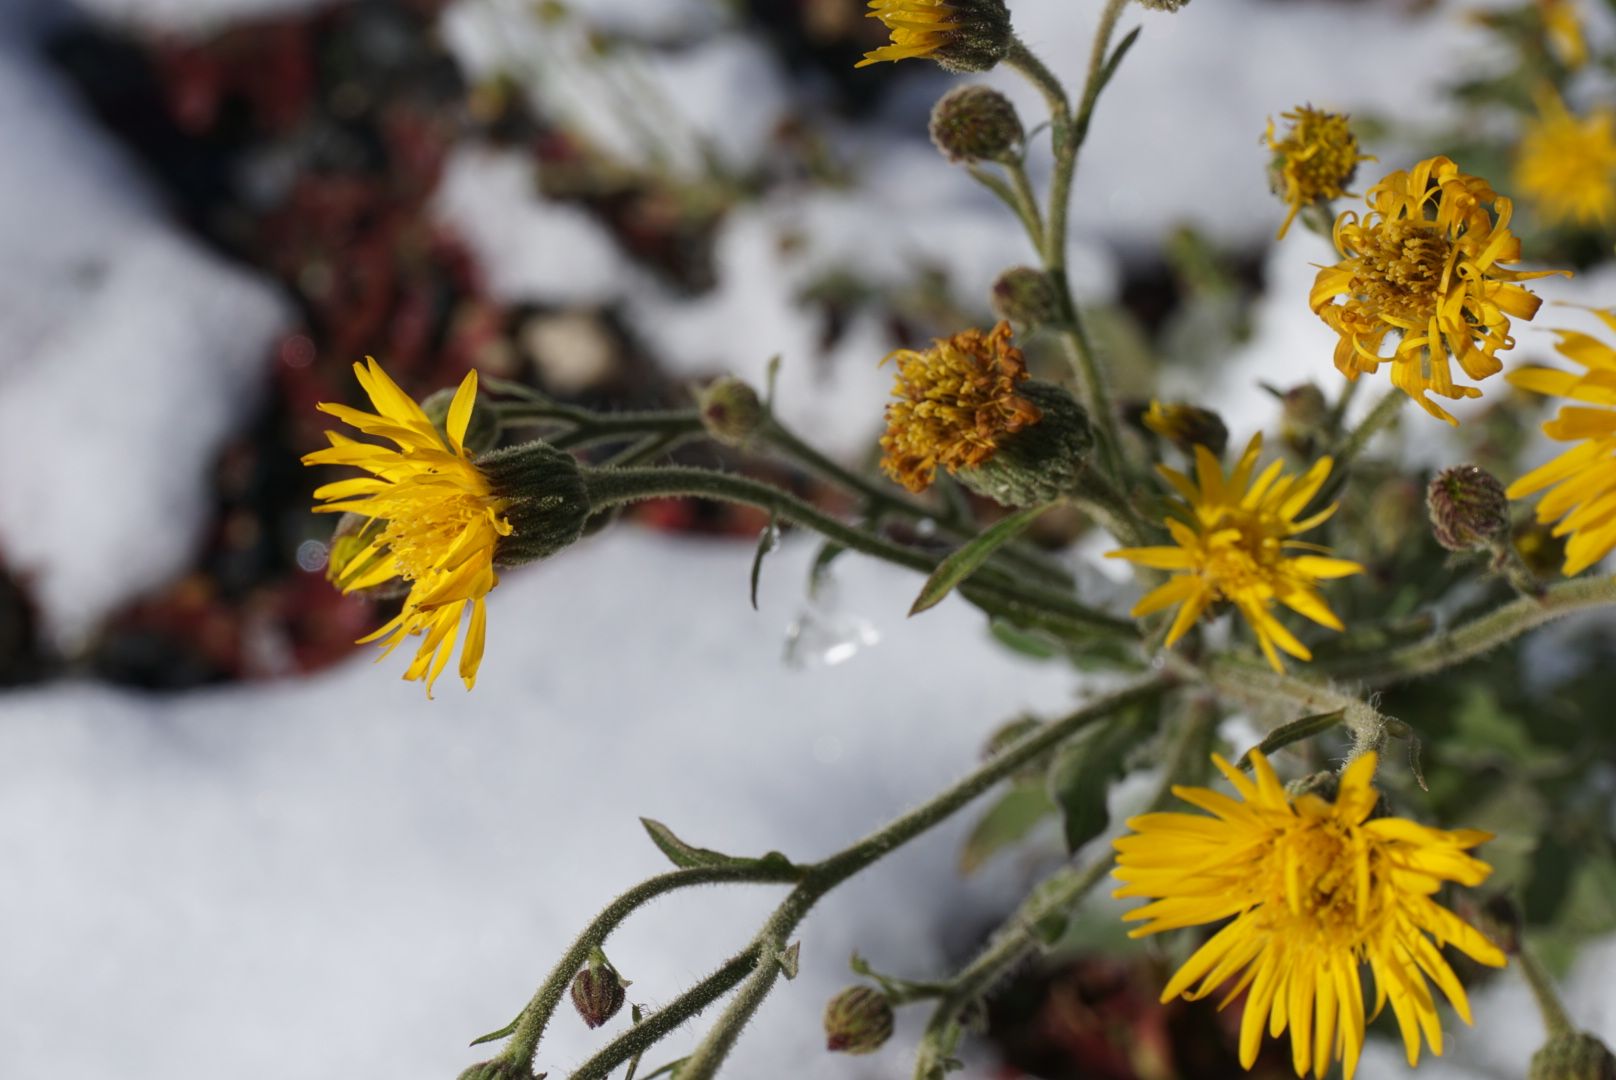 dandelions in the snow